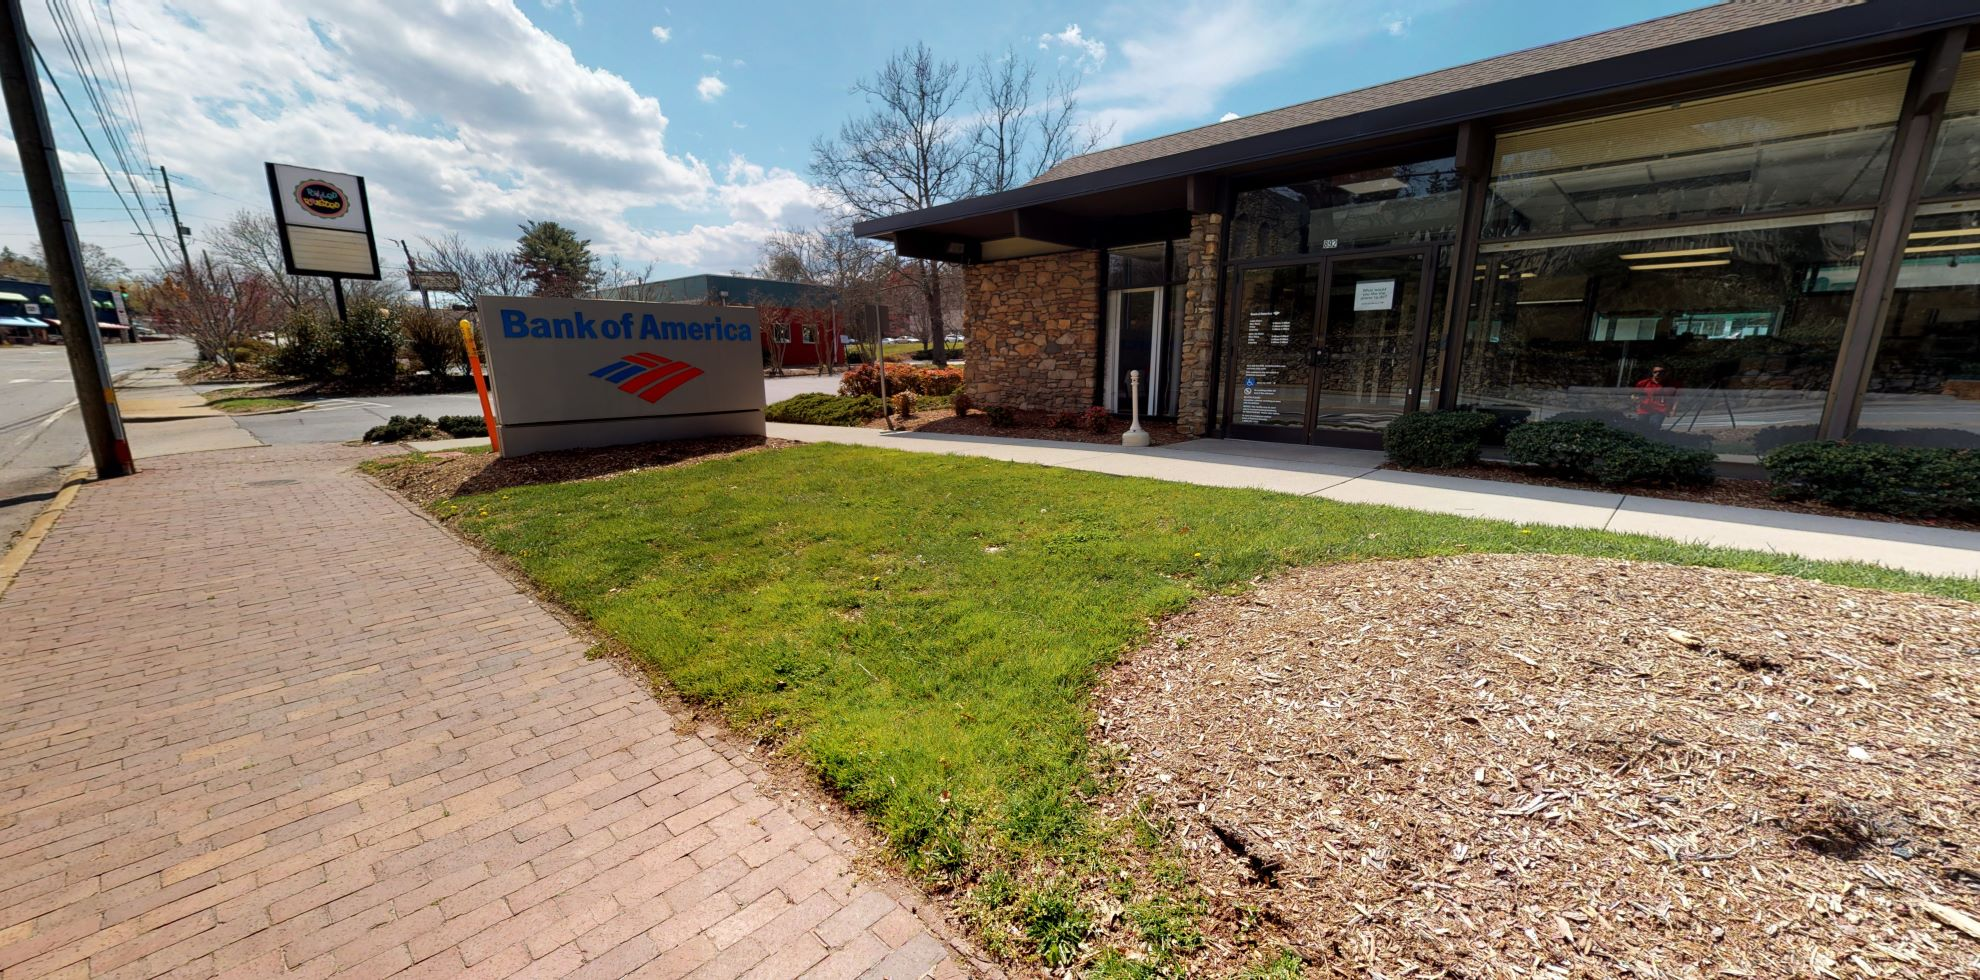 Bank of America financial center with drive-thru ATM and teller | 892 Merrimon Ave, Asheville, NC 28804